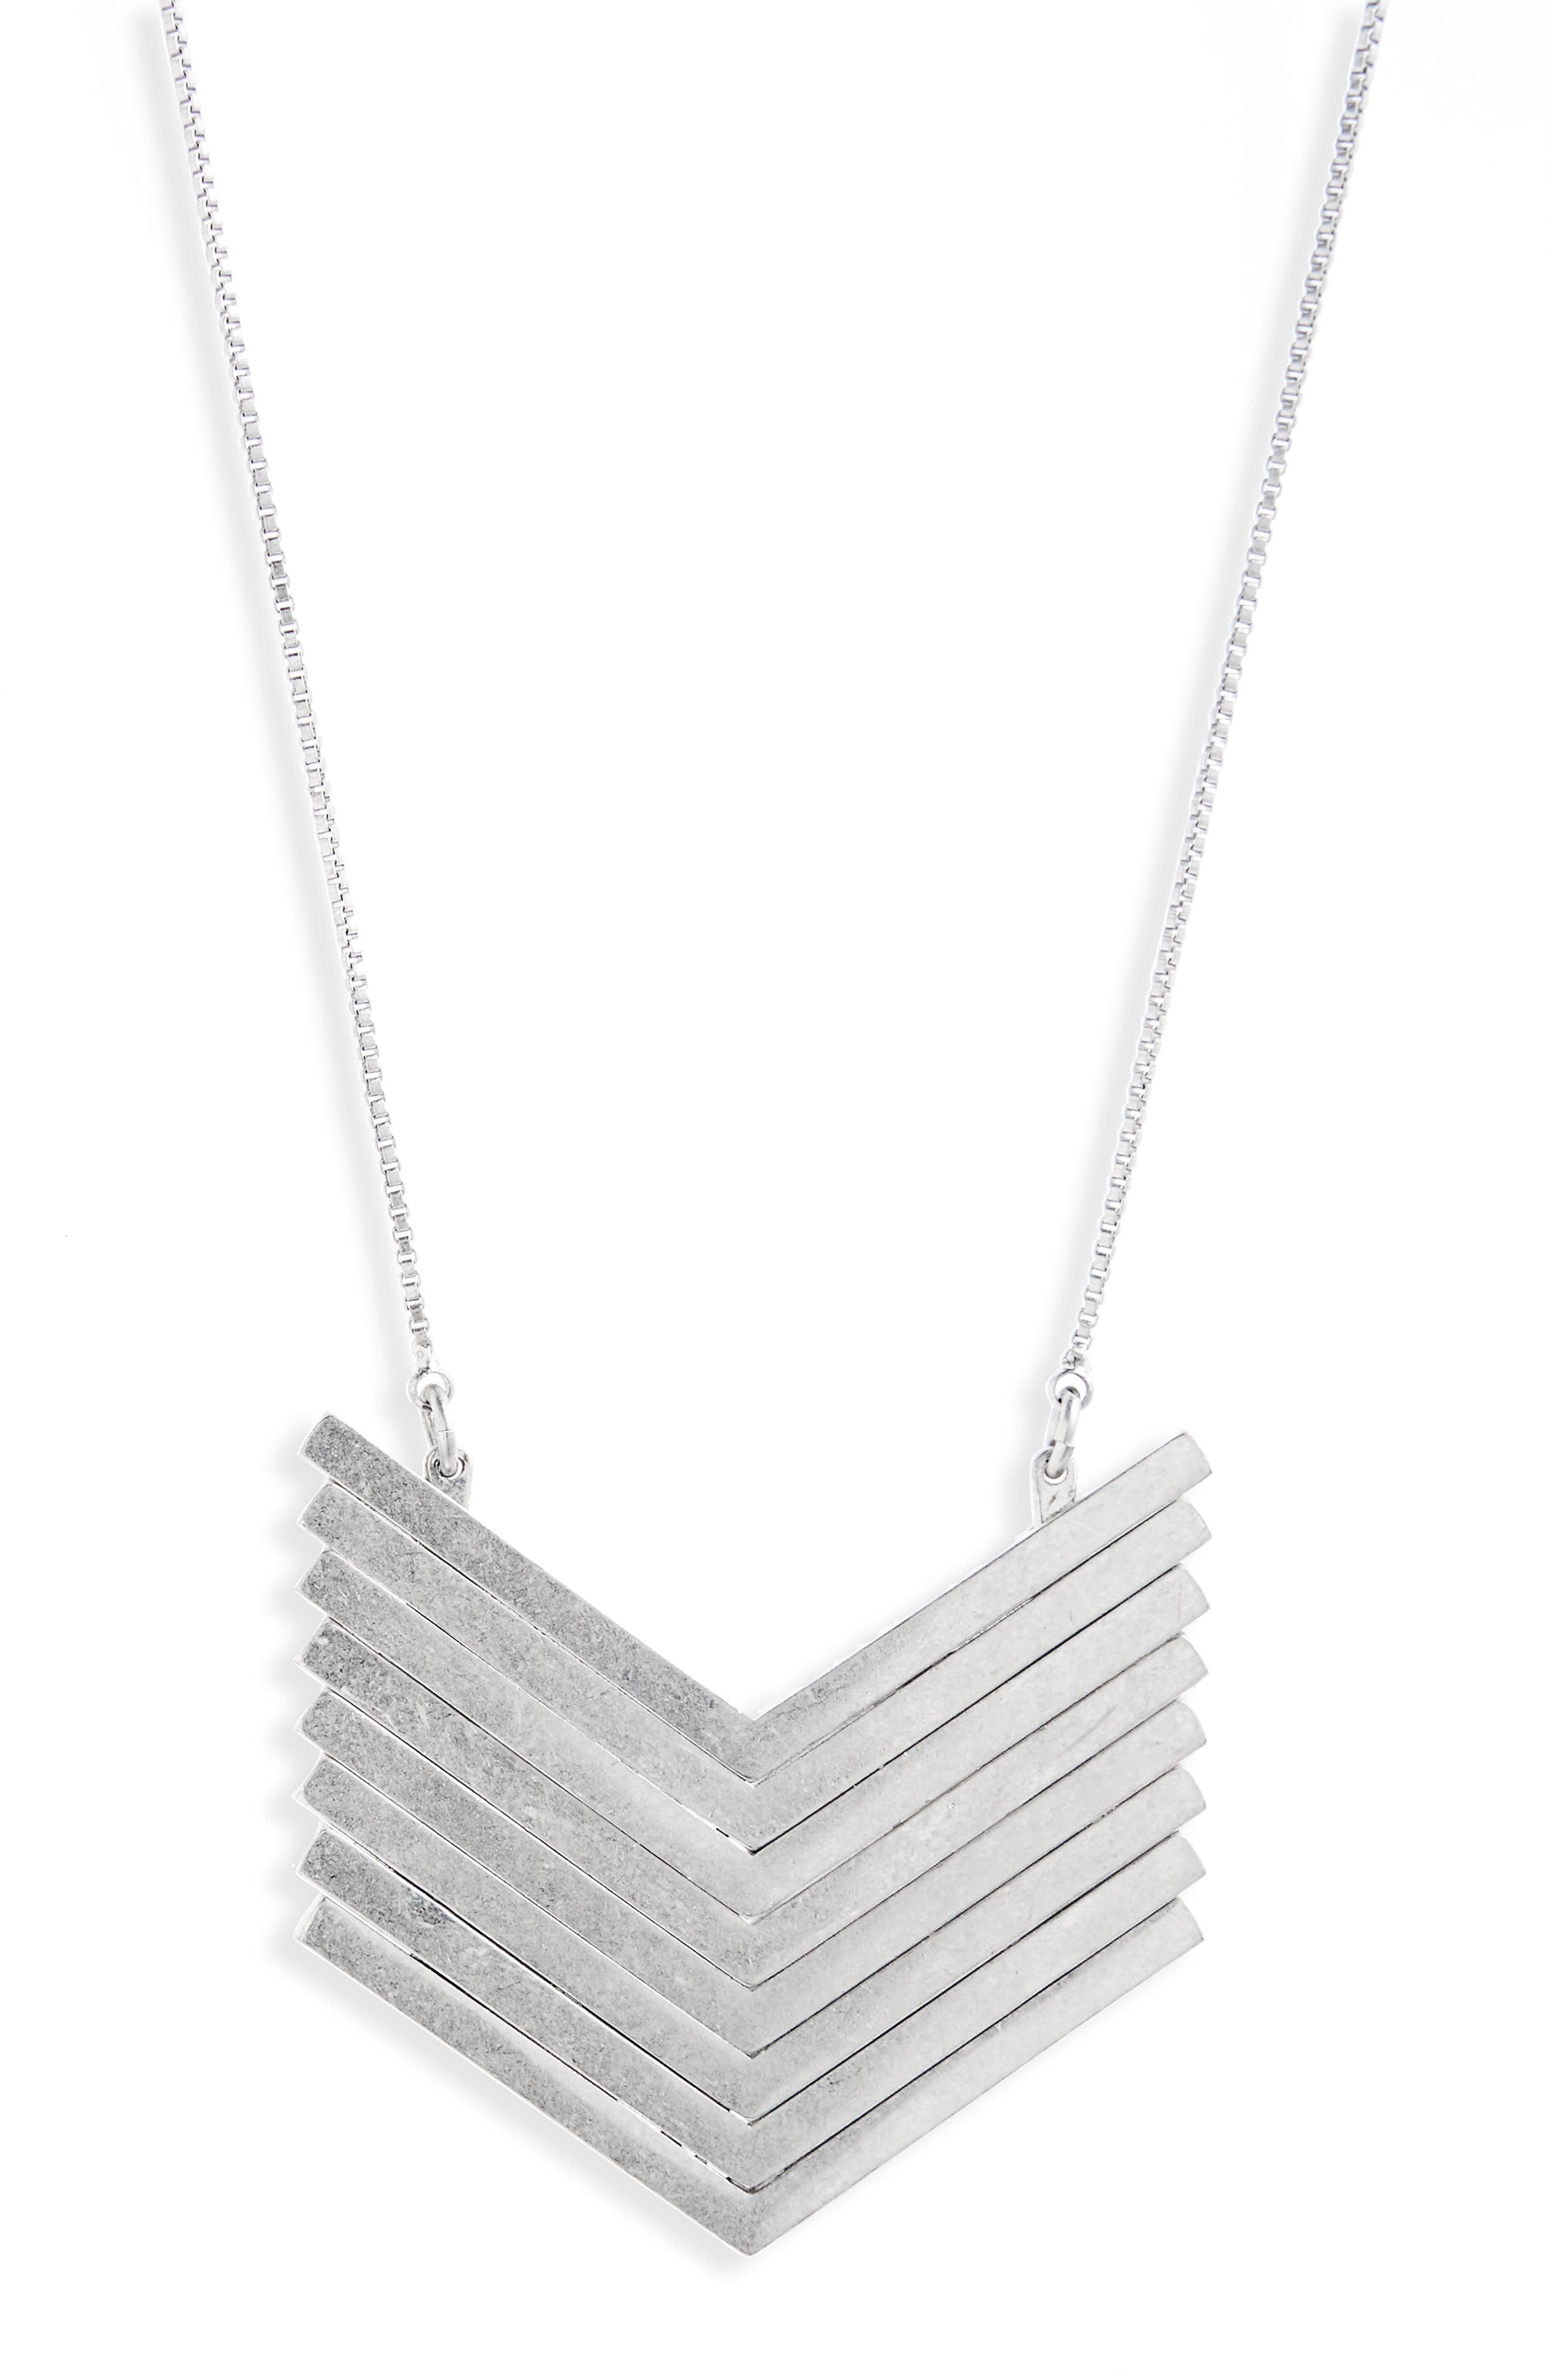 MADEWELL Arrowstack Necklace, Main, color, LIGHT SILVER OX